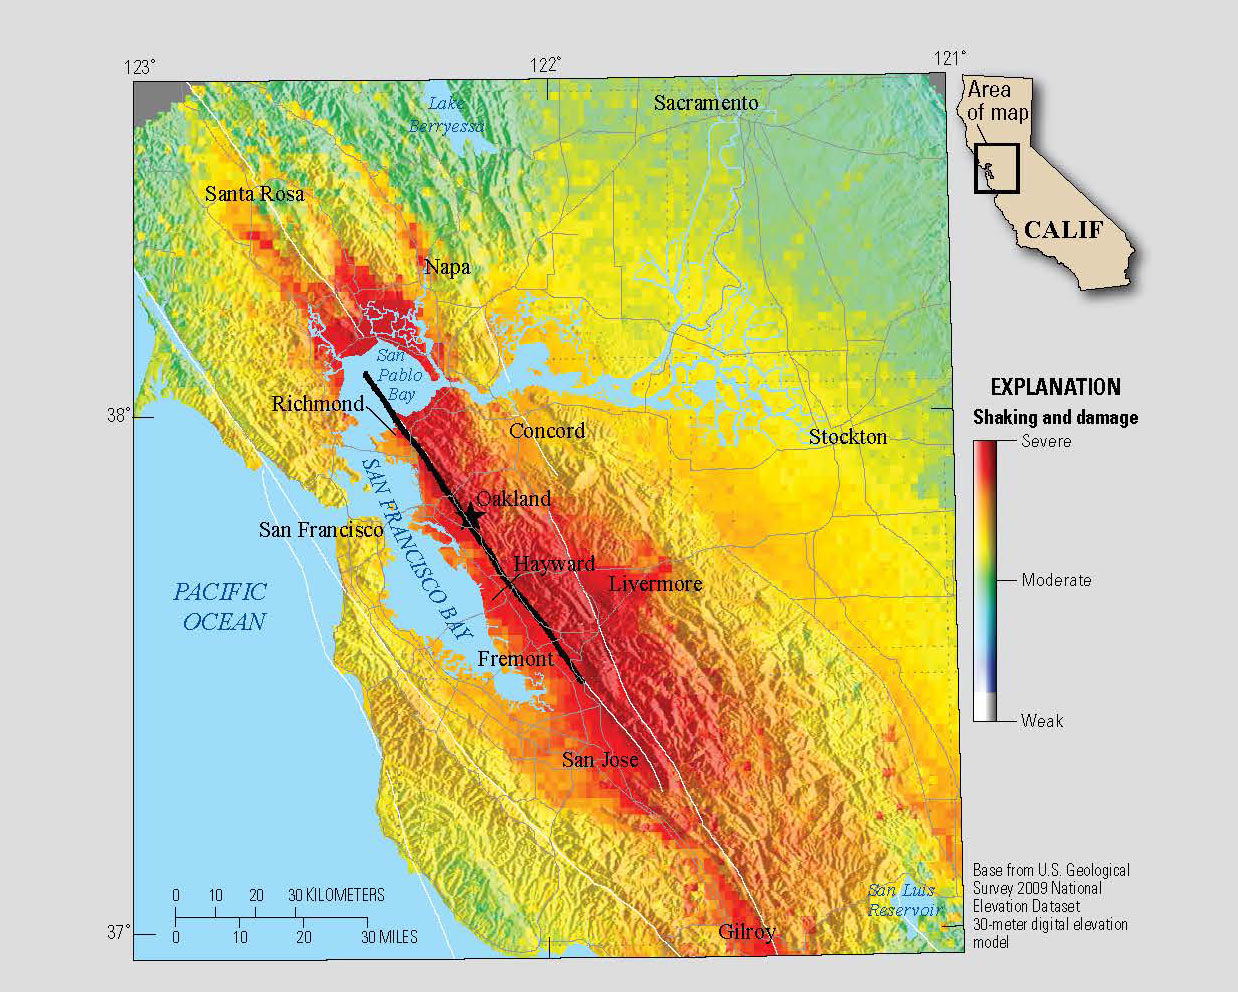 Graph showing expected shaking of hypothetical M7 quake on the Hayward Fault